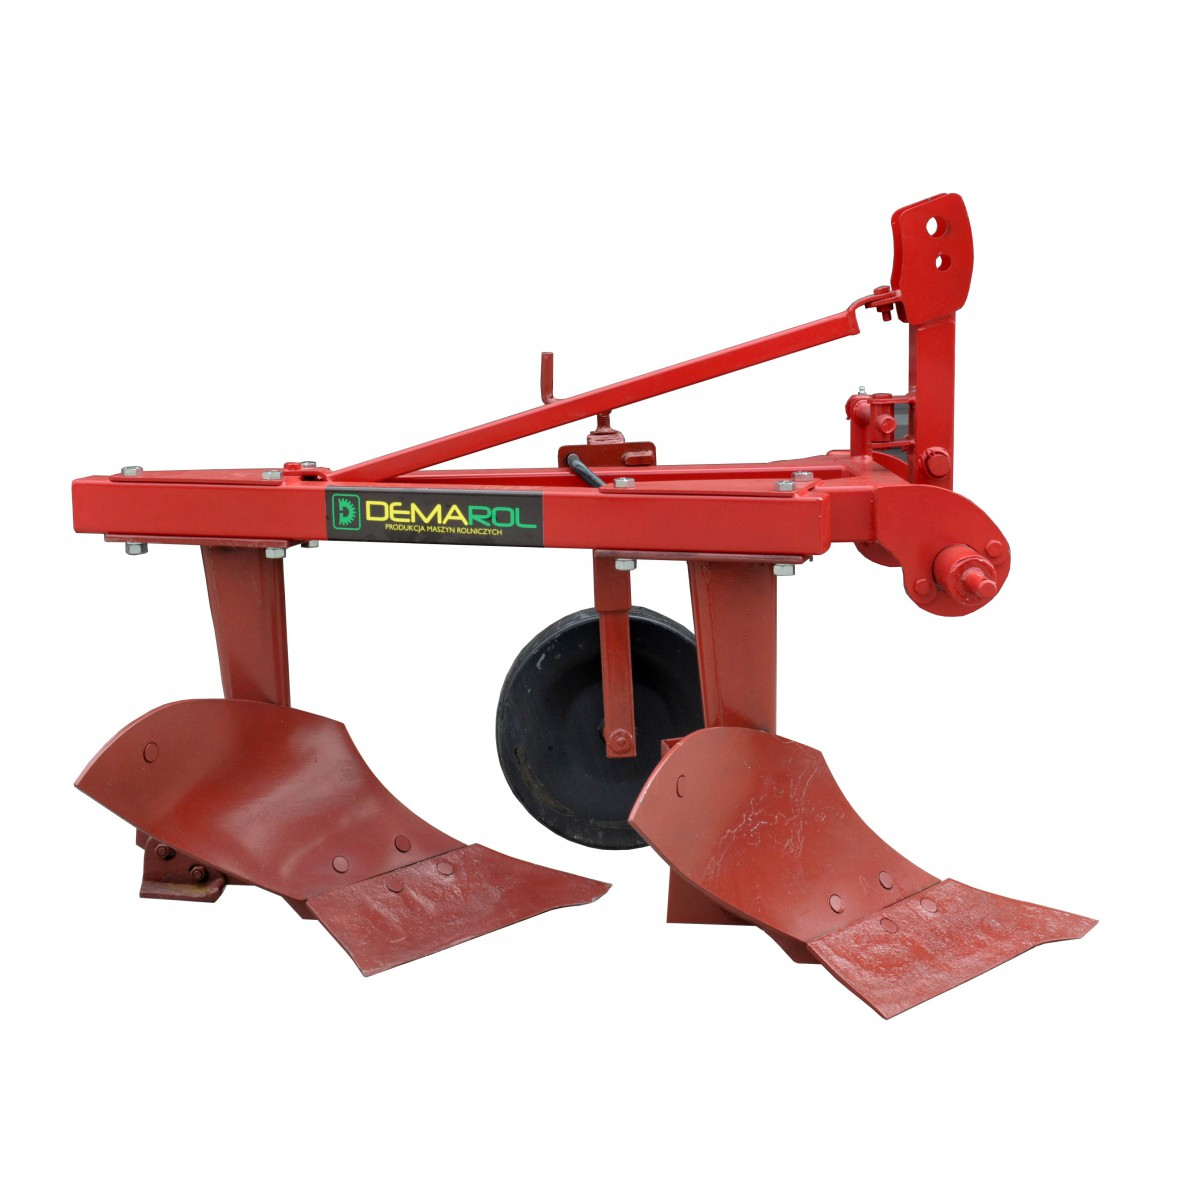 Two-furrow plow with a support wheel